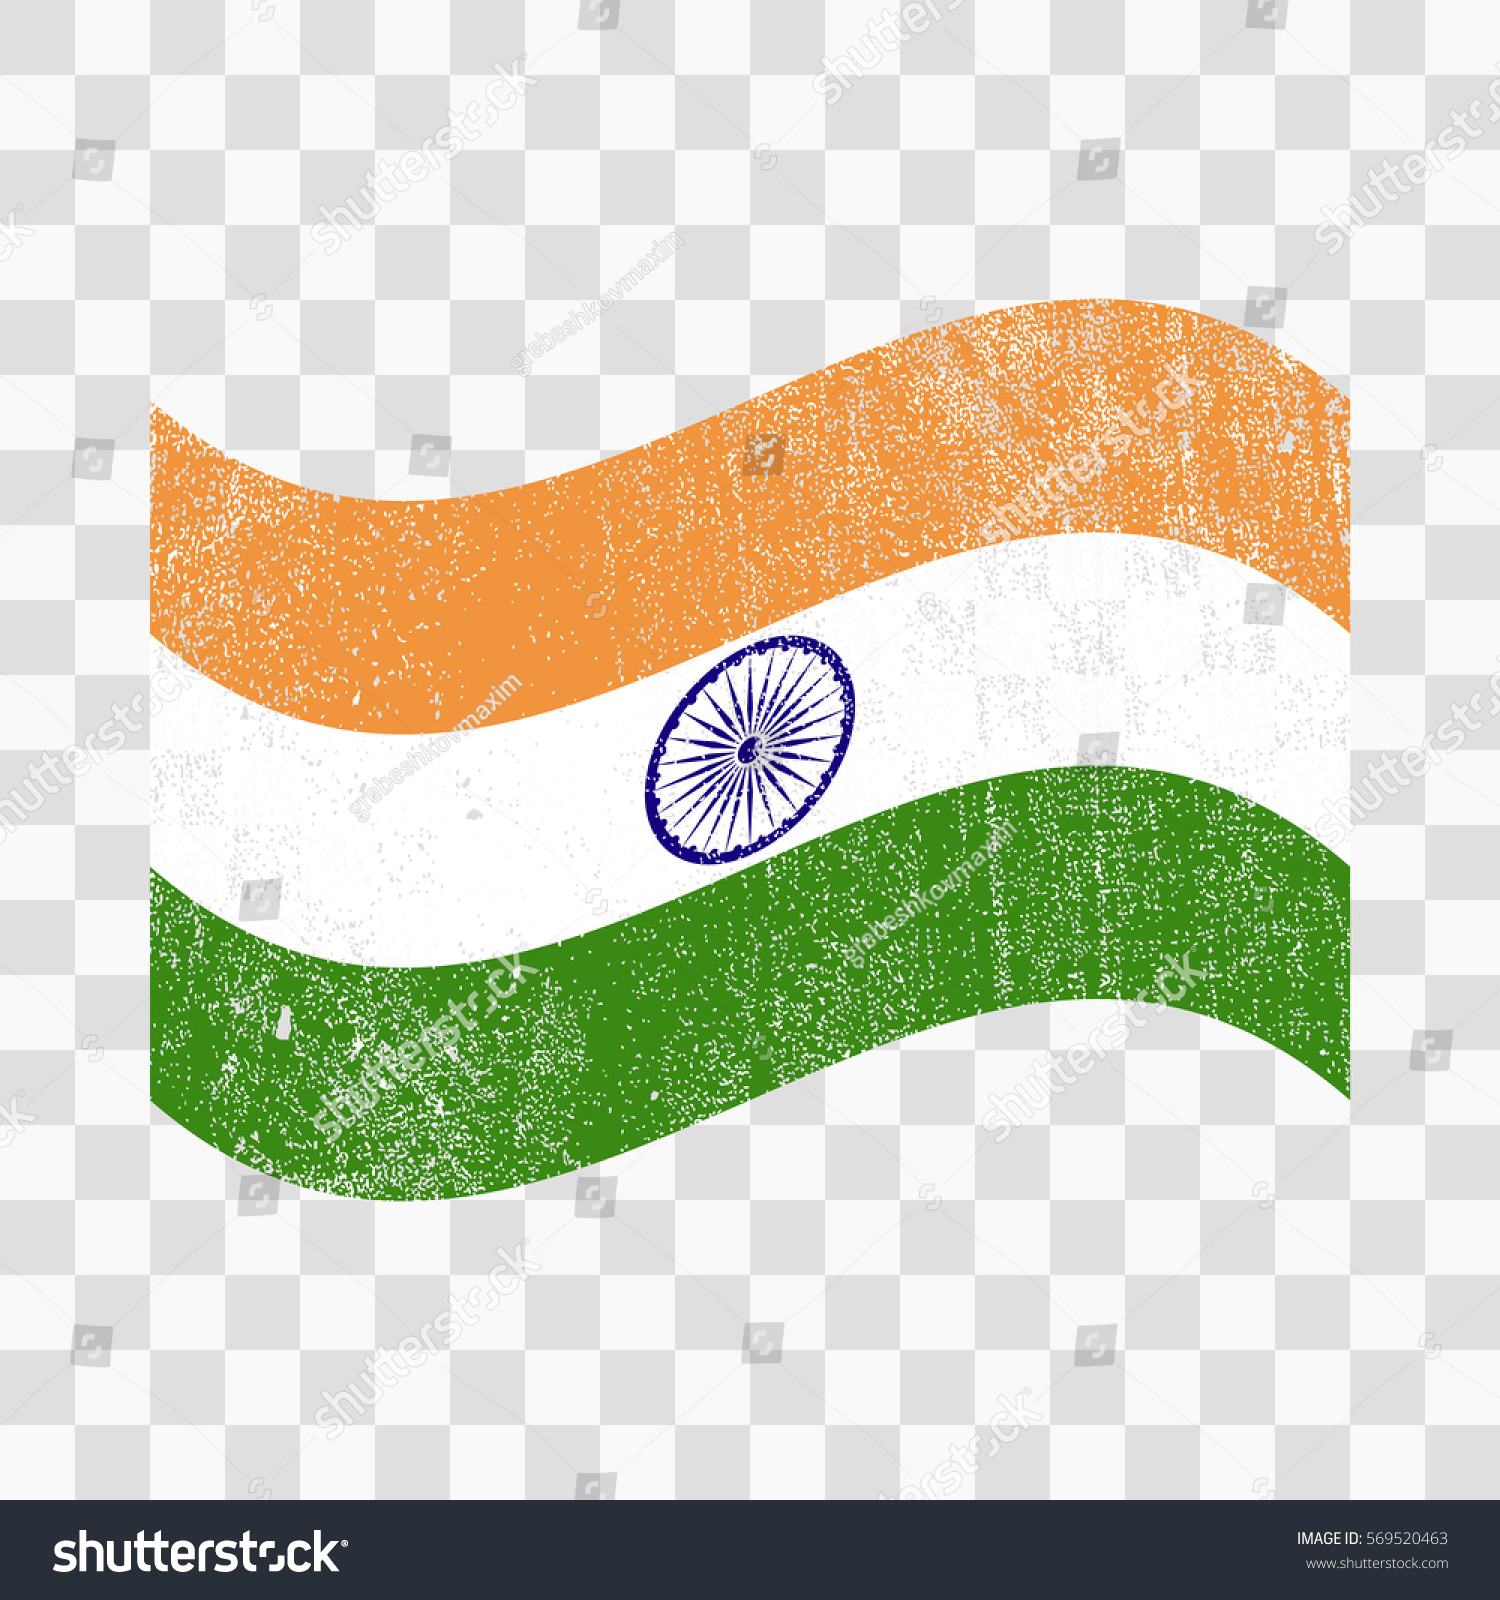 Grunge India Flag Indian Flag Distress Stock Vector 569520463 ...